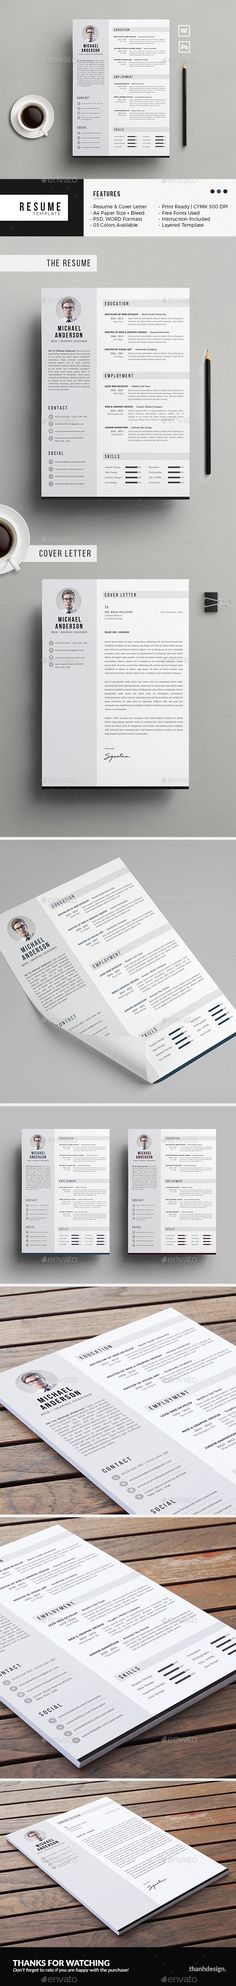 CV Ideas Hire Me Flyer Cv ideas, Marketing flyers and Psd templates - font for a resume